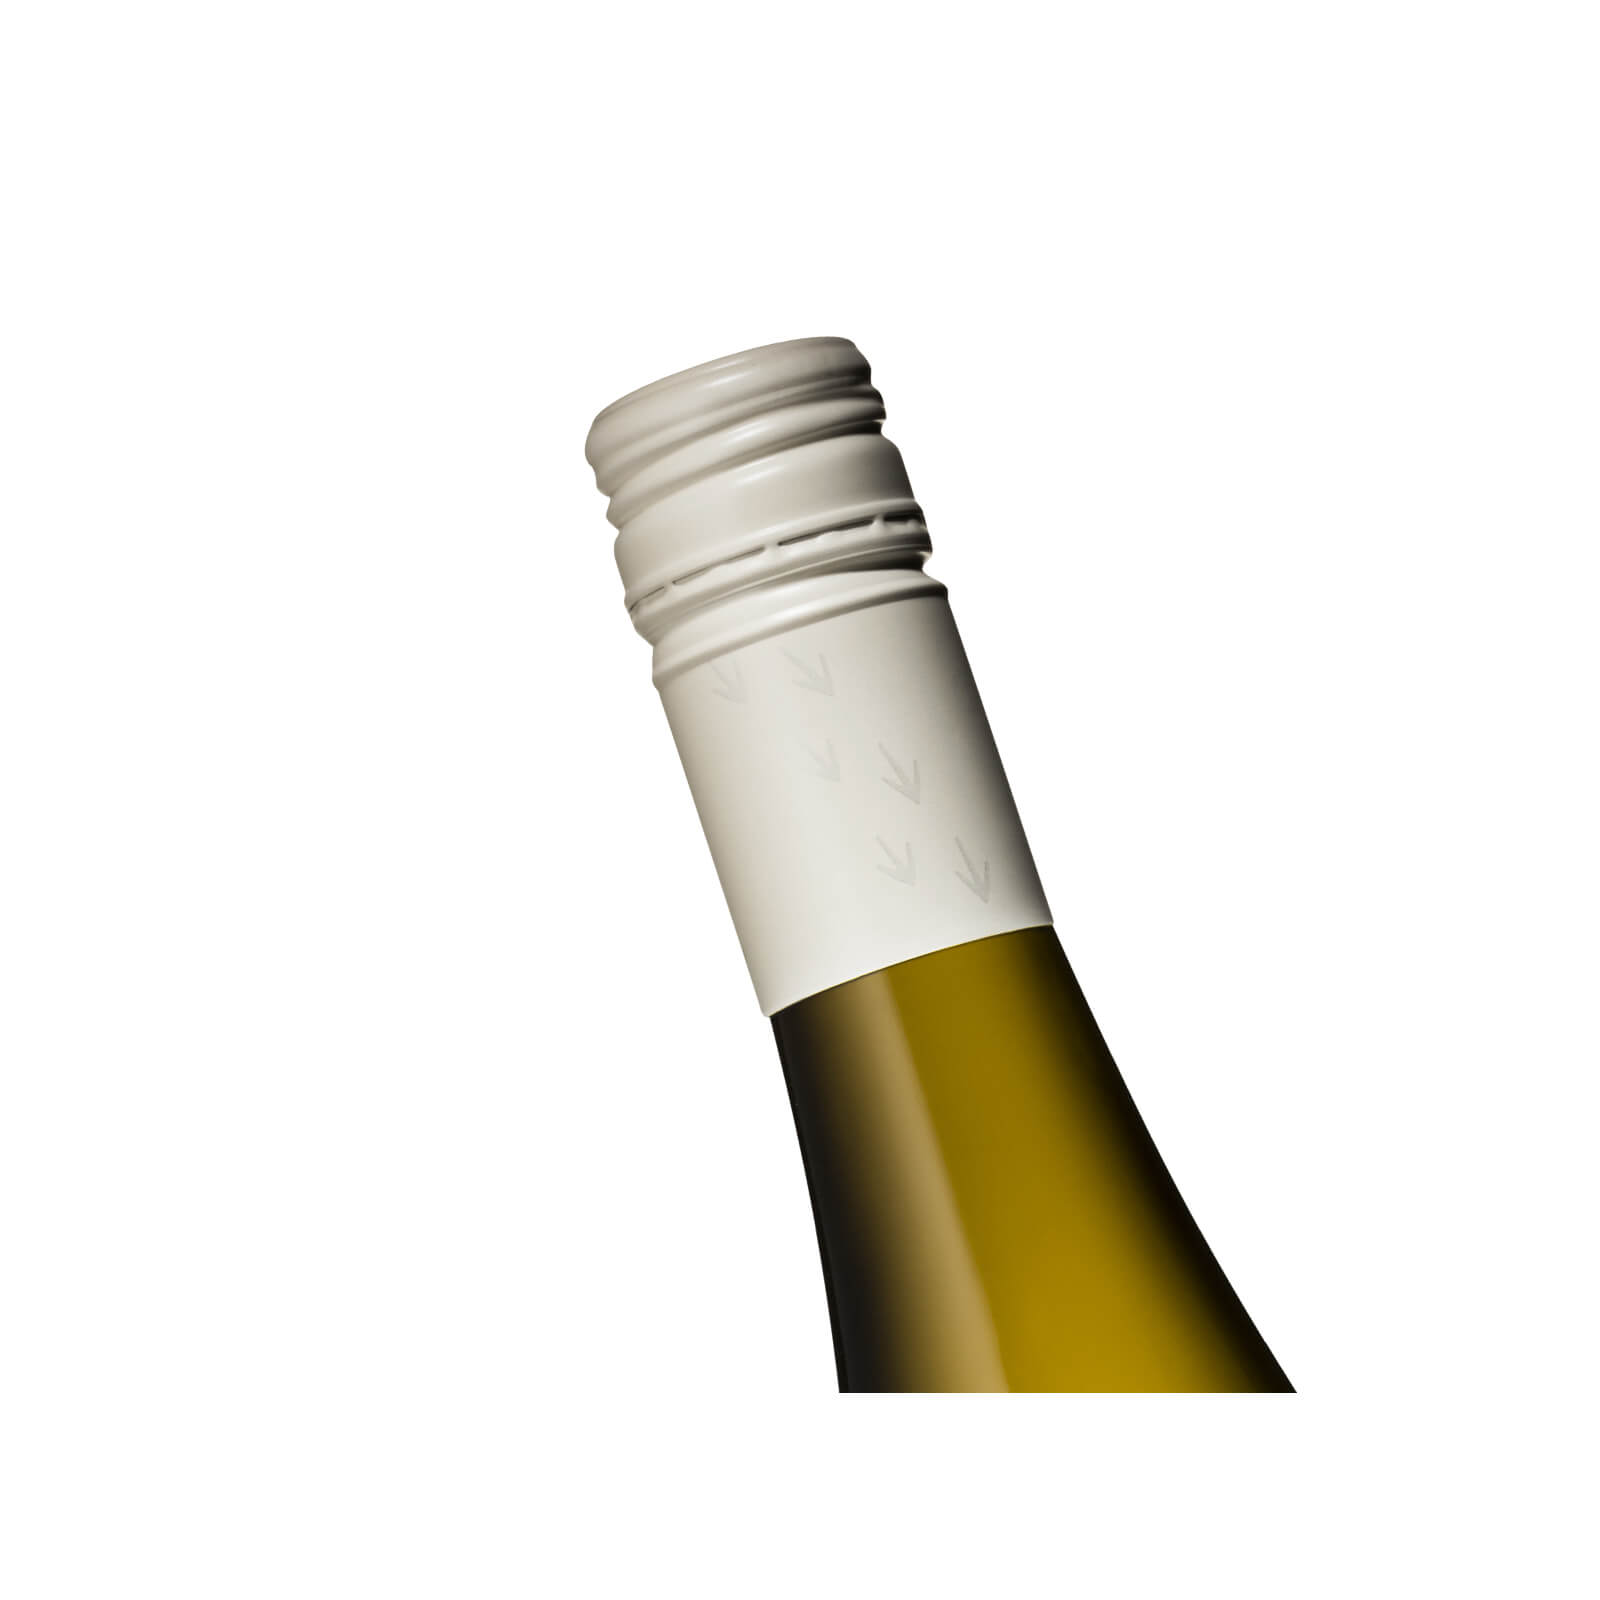 products-grounded-cru-adelaide-hills-pinot-gris-d